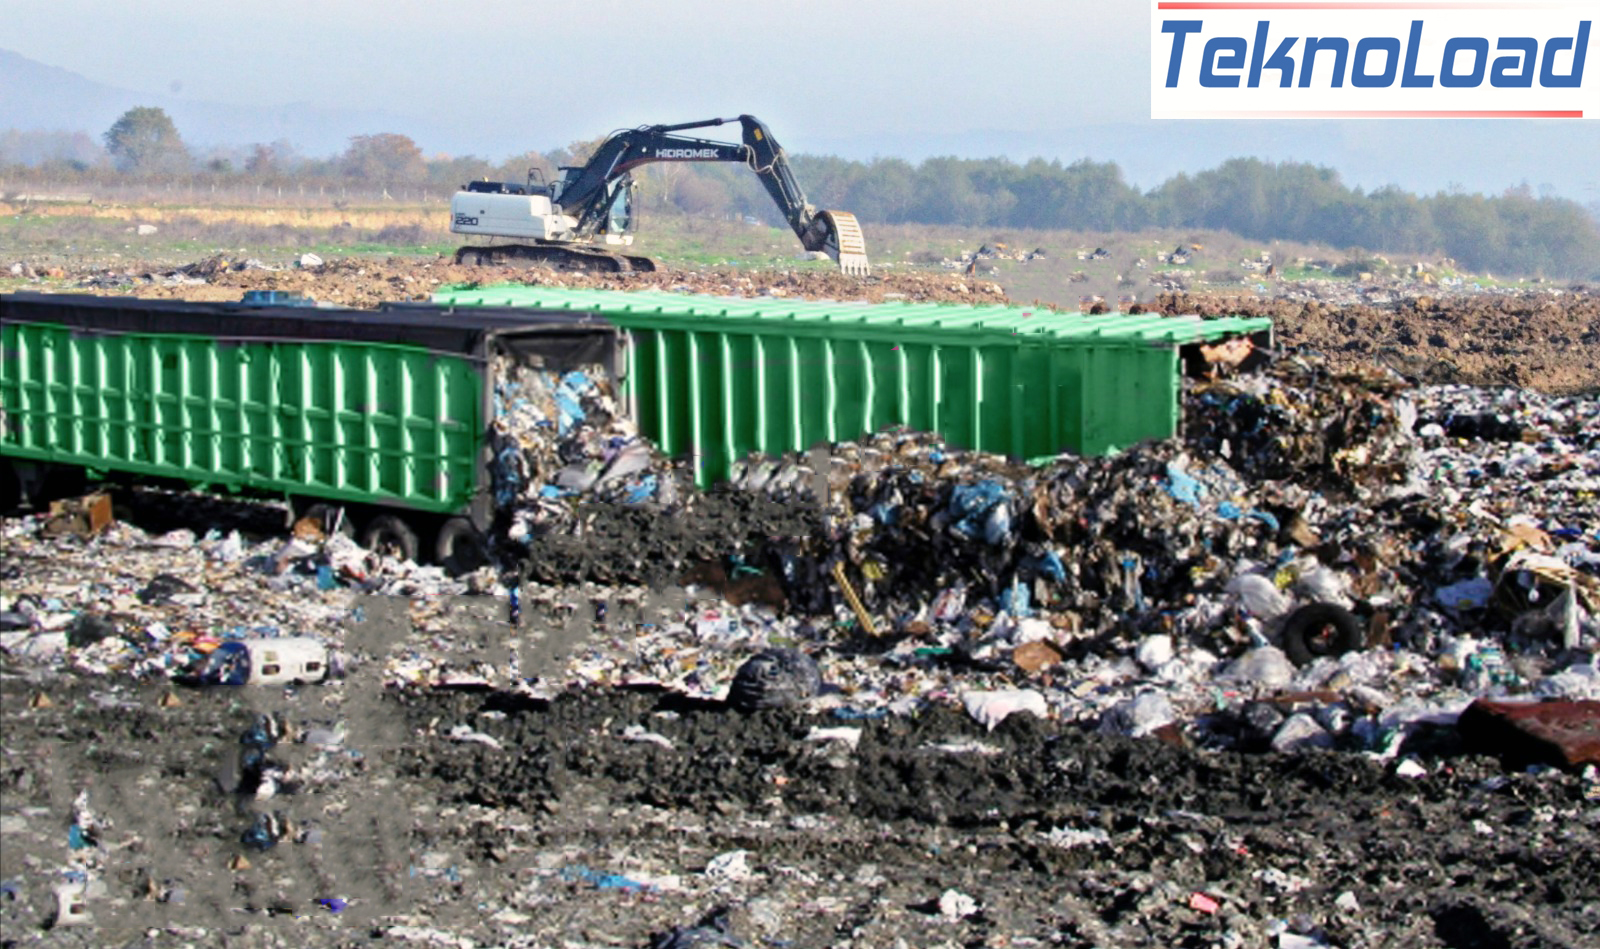 Teknoload recycling